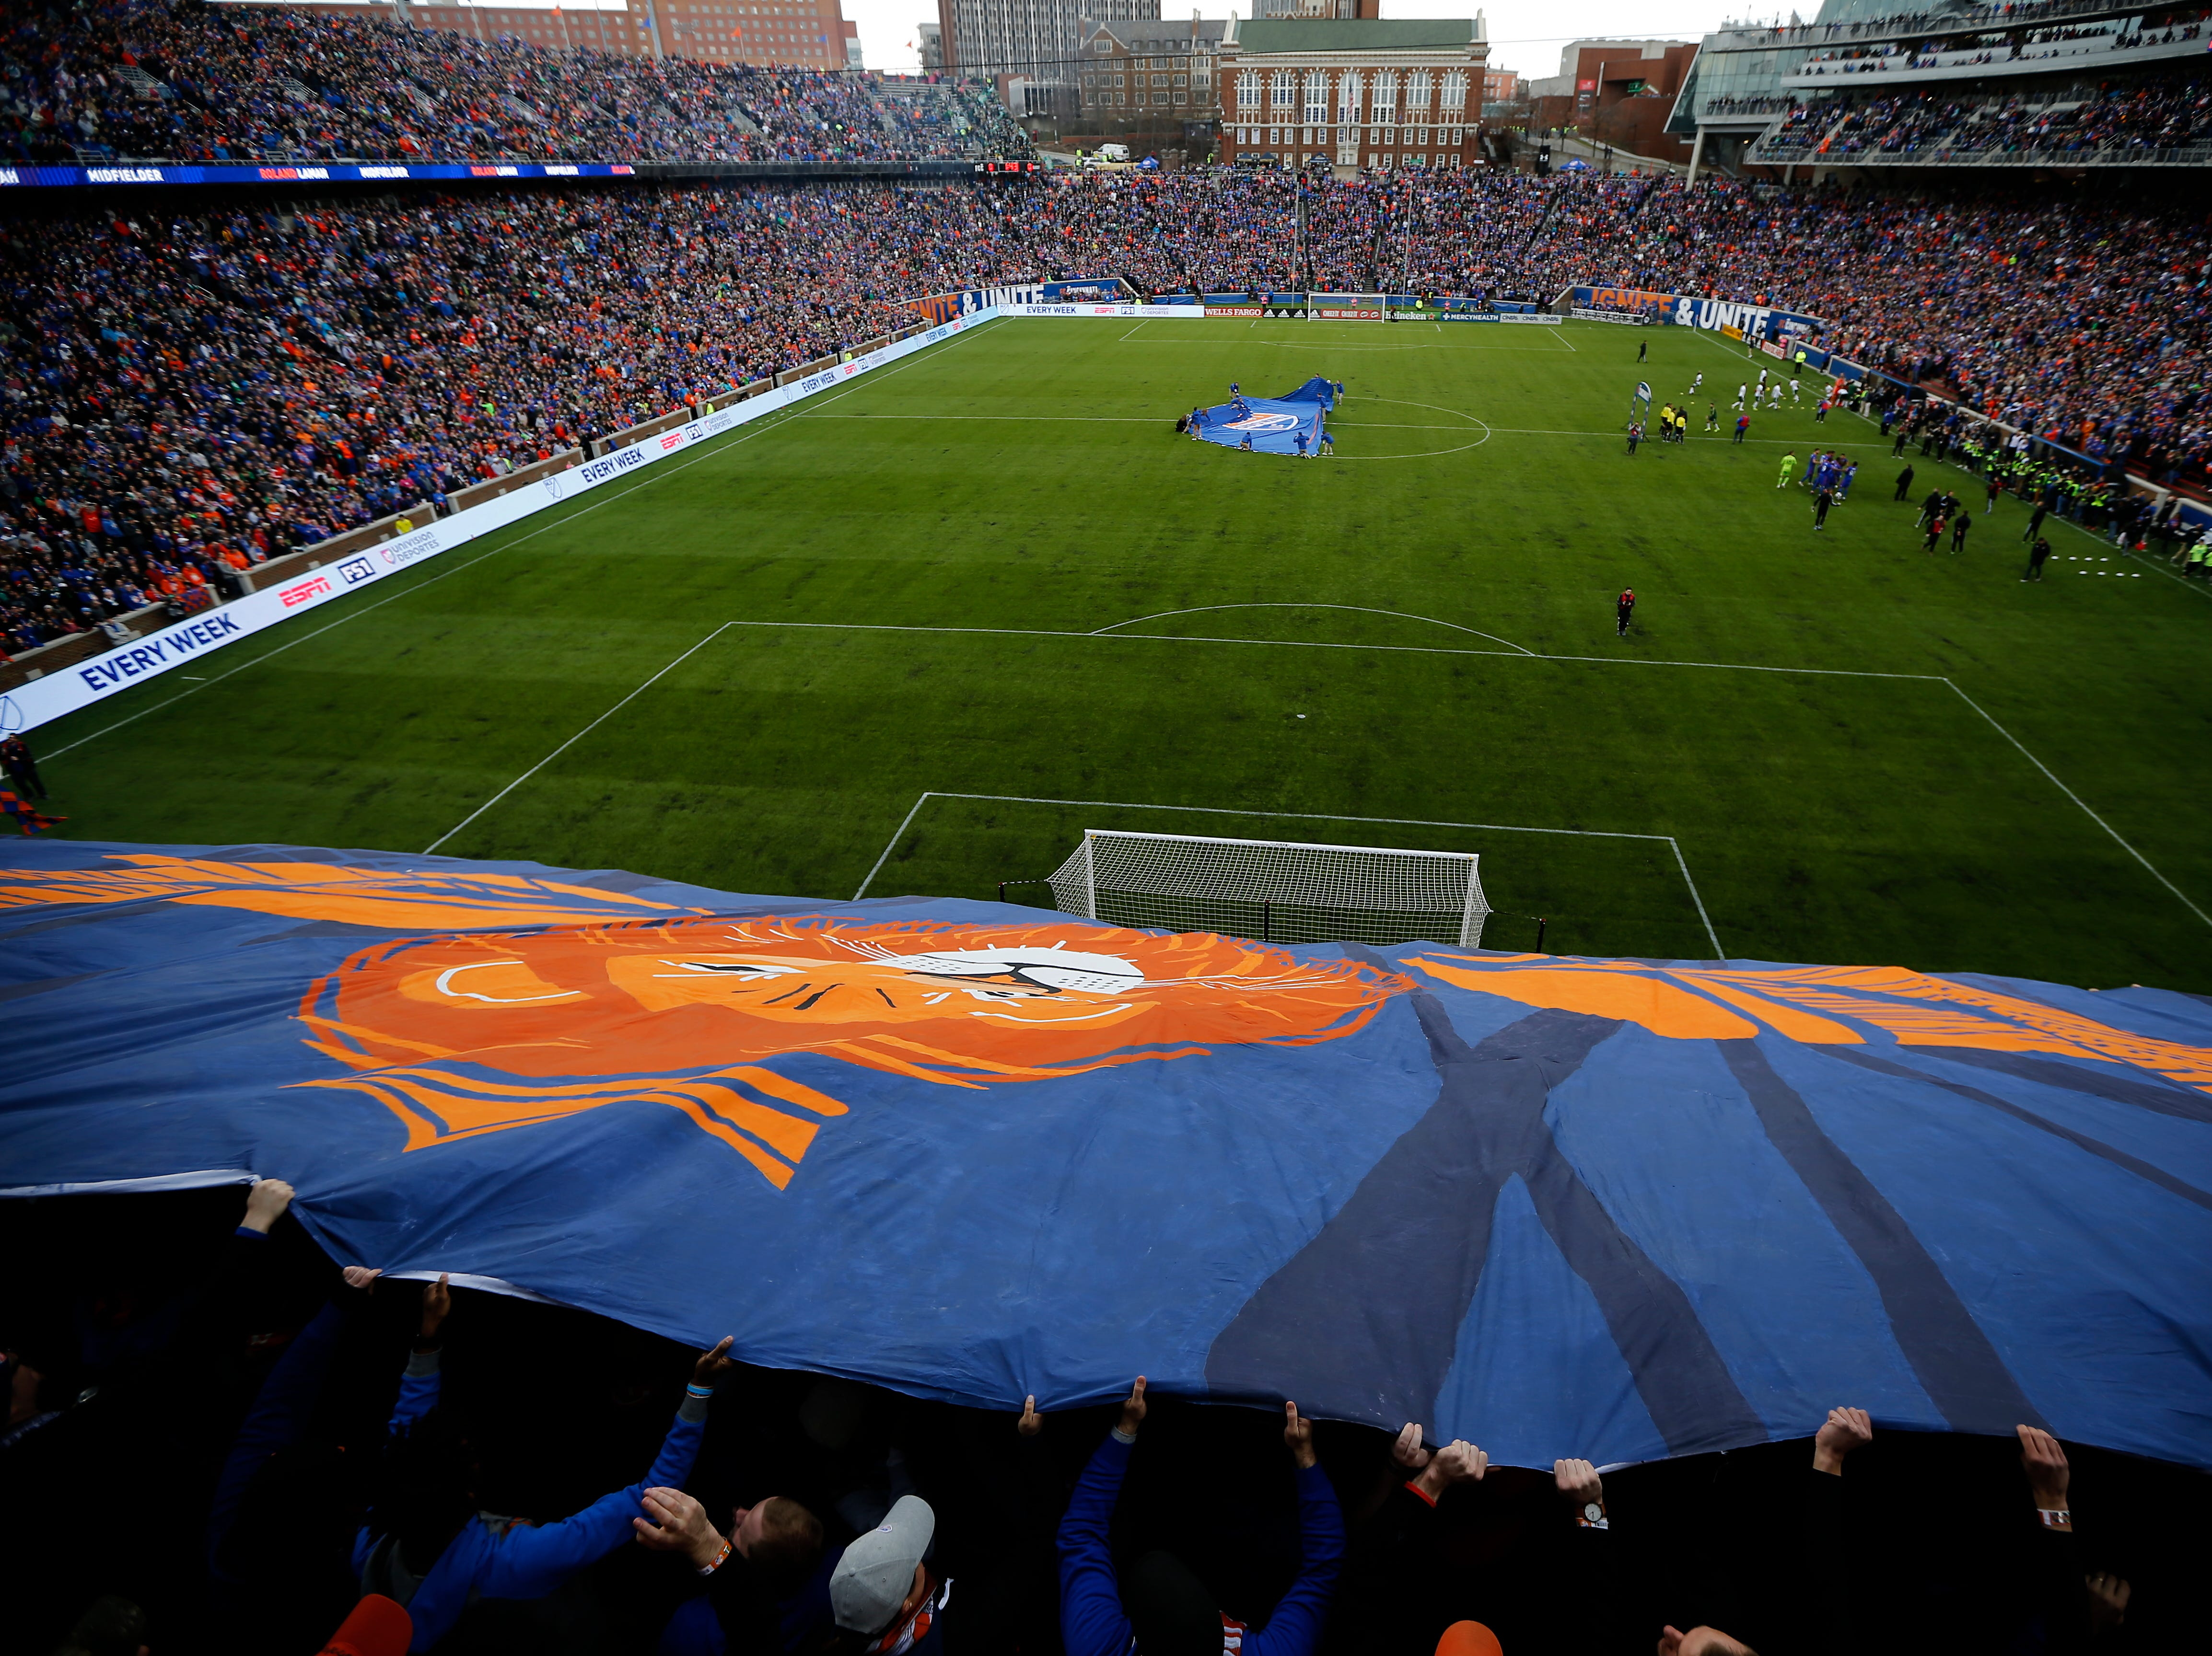 The Bailey cheers at the start of the first half of the MLS match between FC Cincinnati and the Portland Timbers at Nippert Stadium in Cincinnati on Sunday, March 17, 2019. FC Cincinnati led 1-0 at halftime.